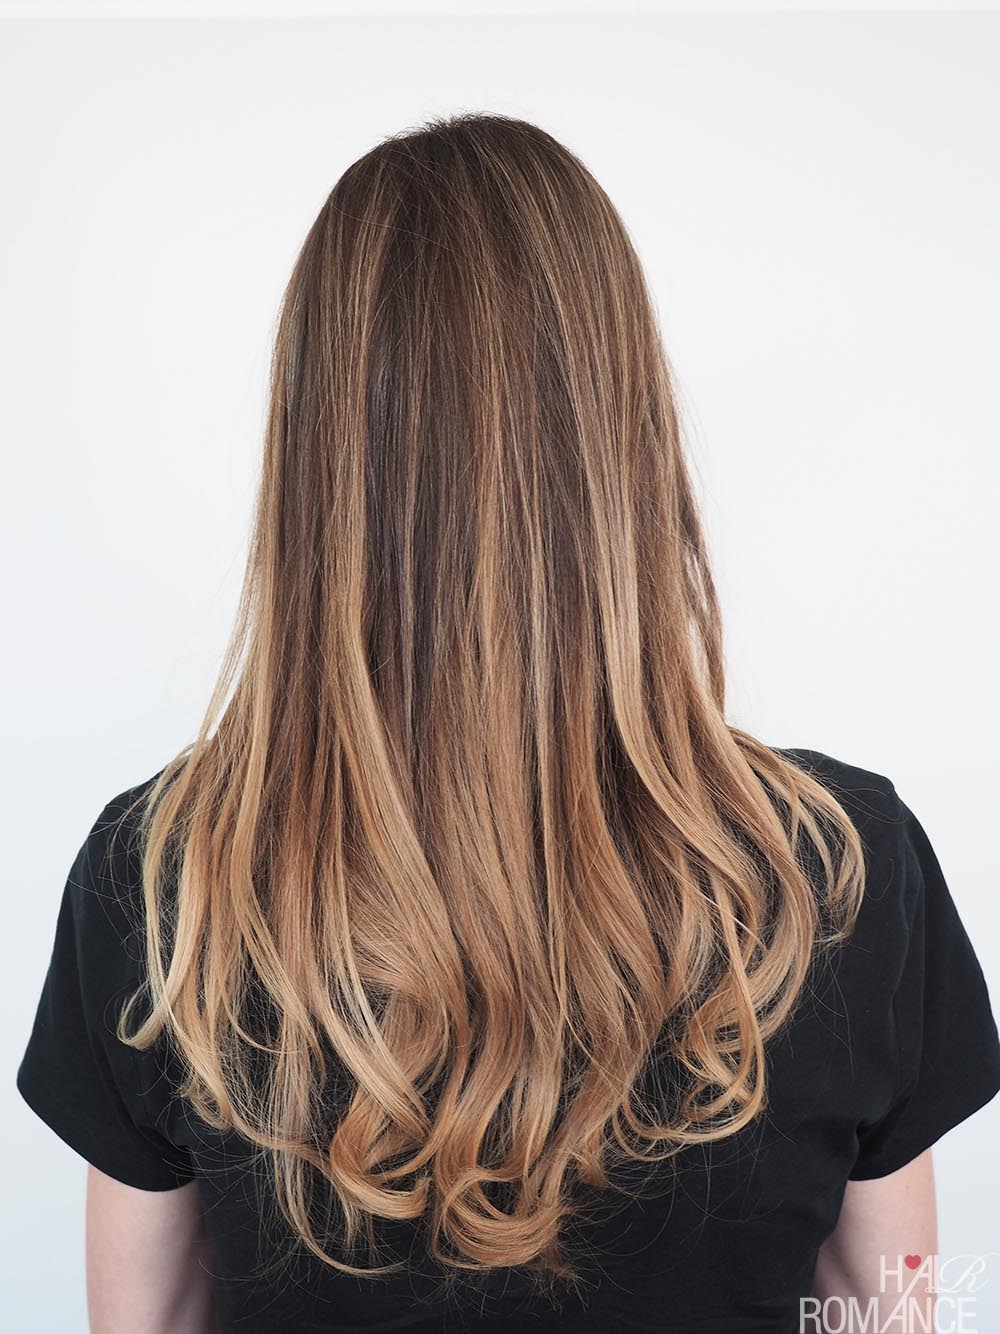 Schwarzkopf Hair Transformations - Lana - after Fibre Therapy